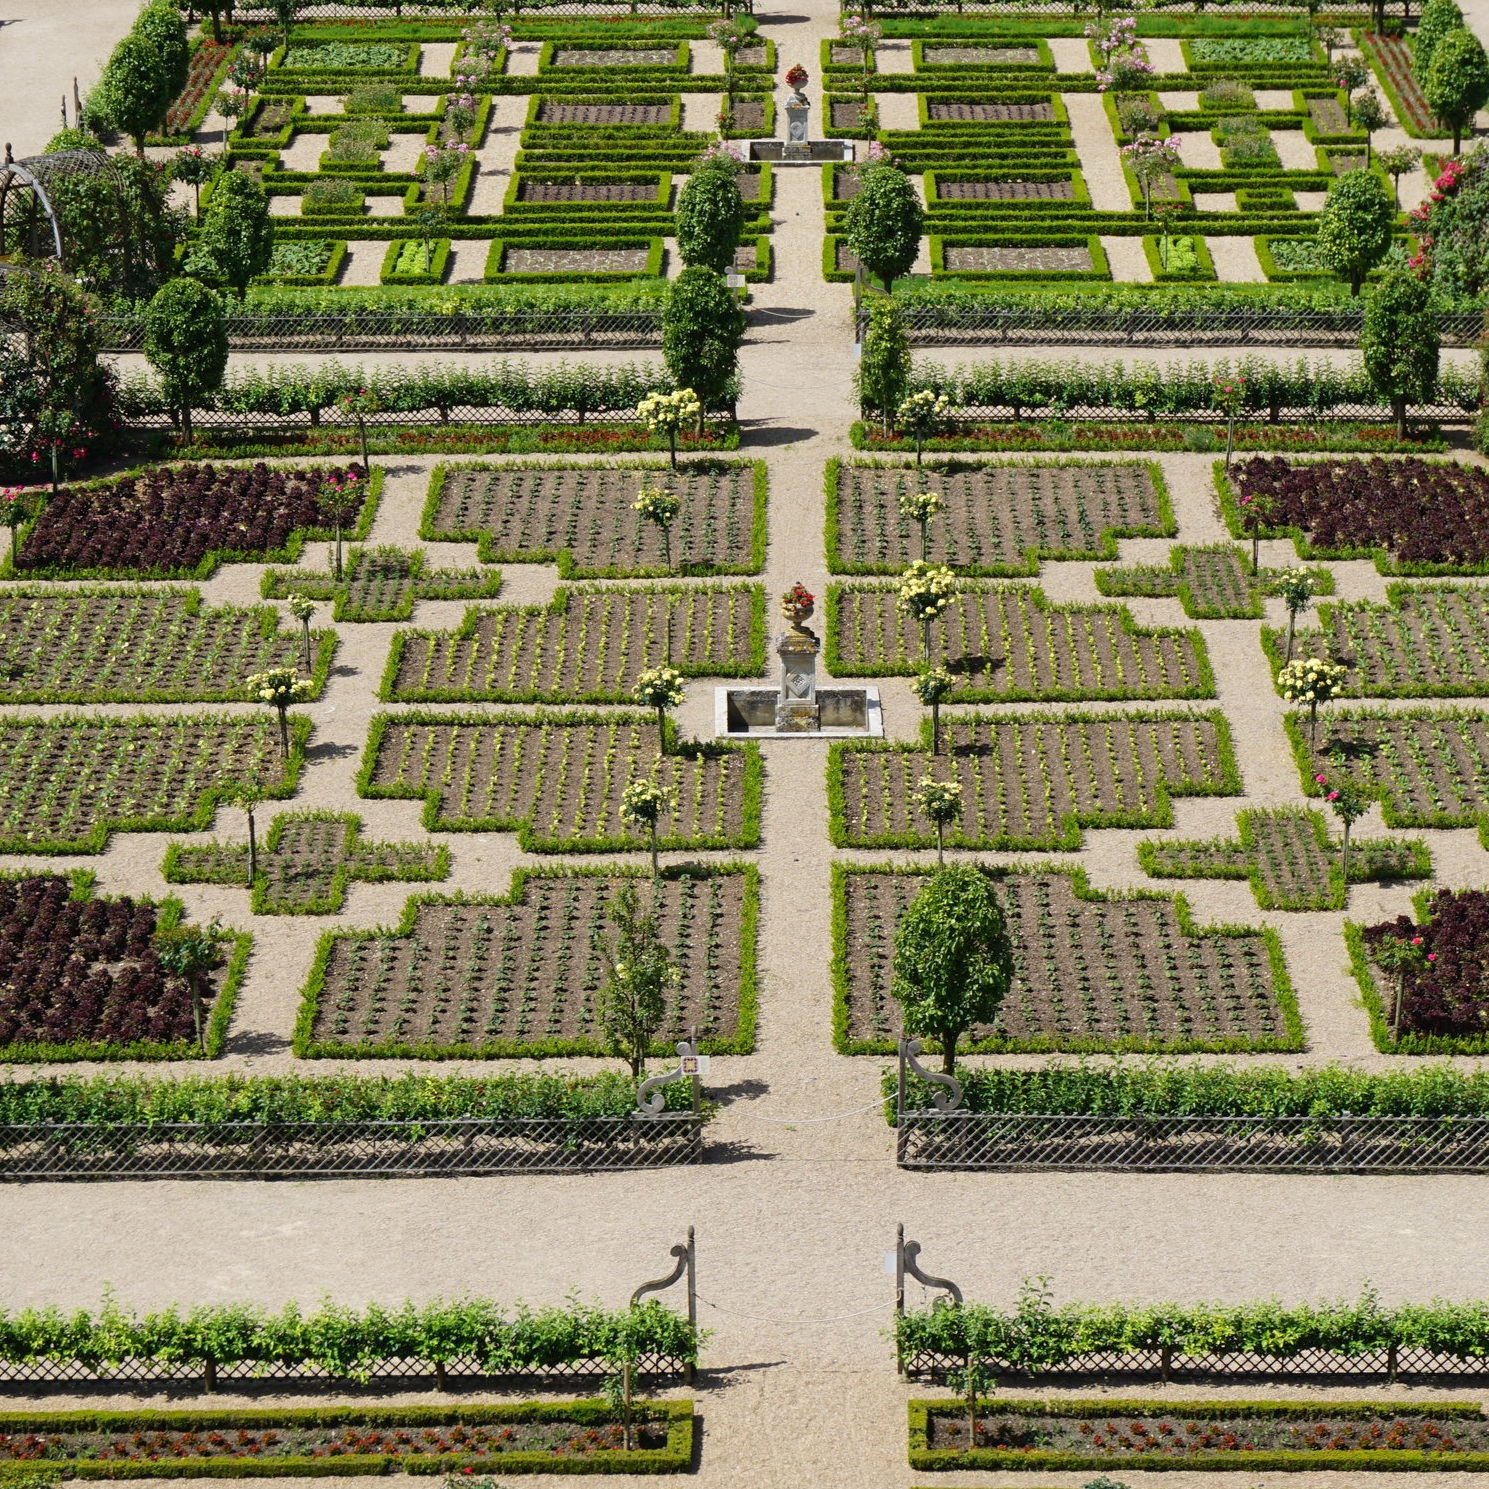 Boxwood gardens at the Chateau de Villandry.